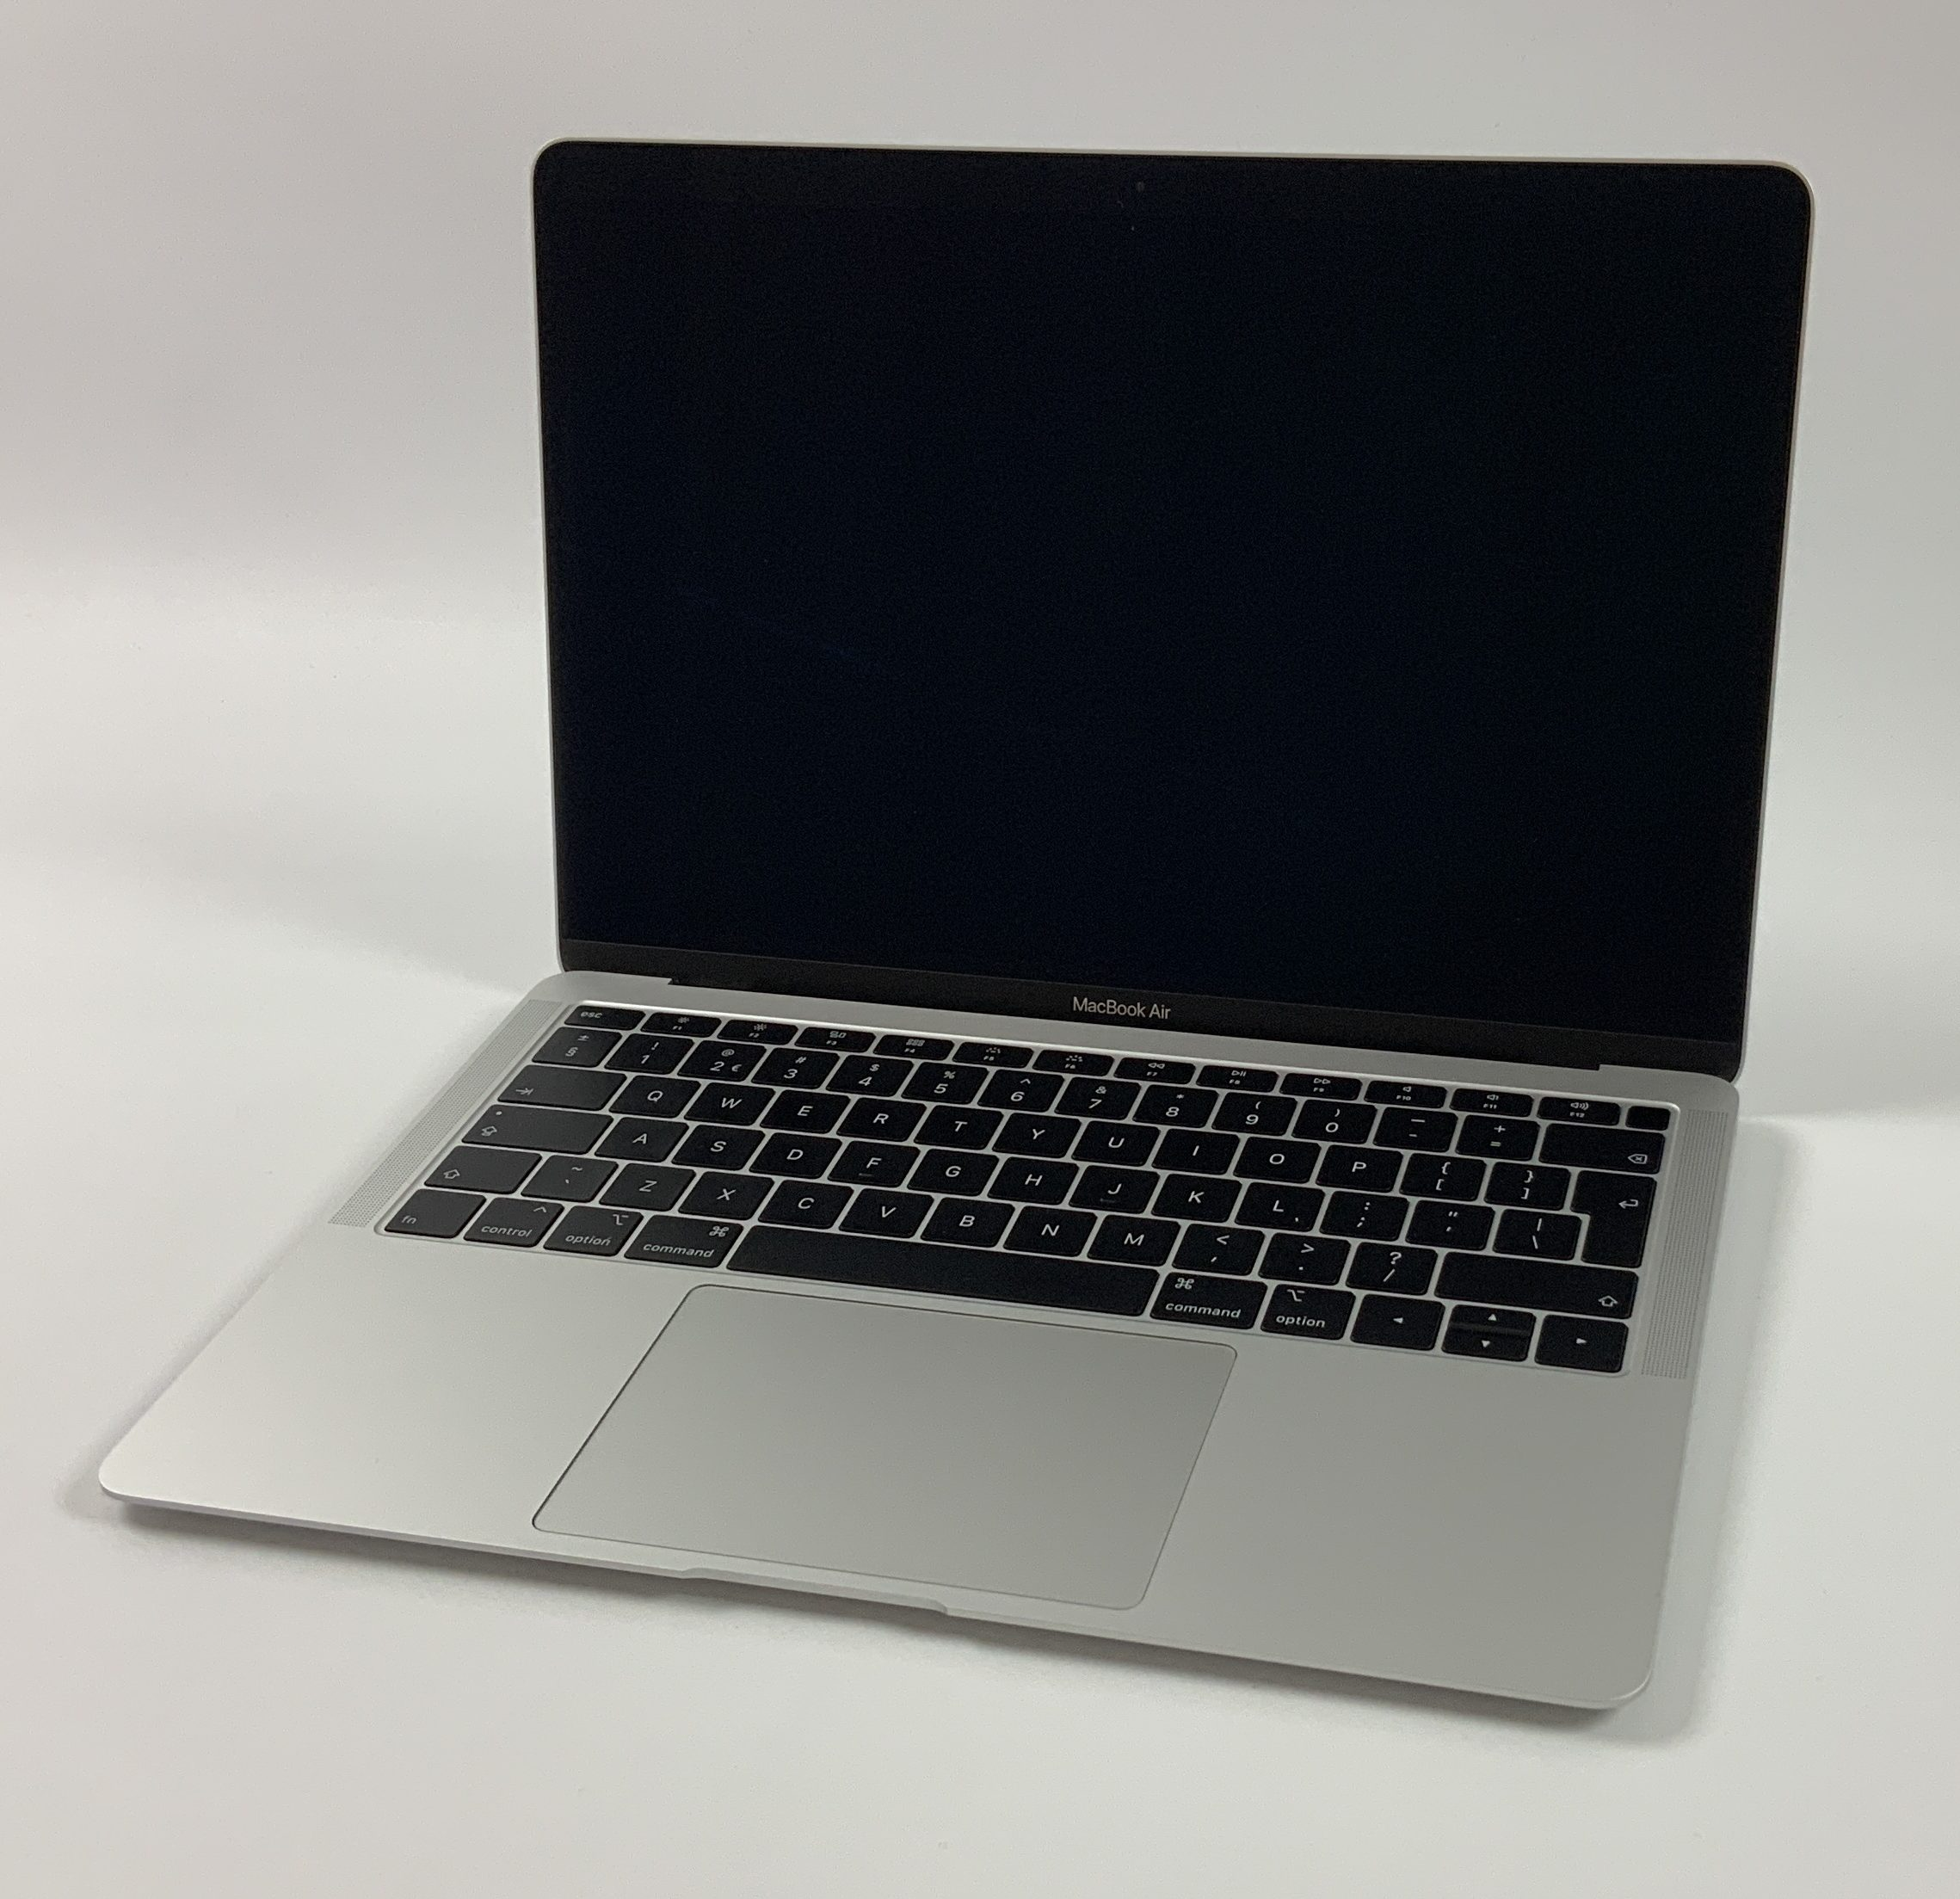 "MacBook Air 13"" Late 2018 (Intel Core i5 1.6 GHz 16 GB RAM 512 GB SSD), Silver, Intel Core i5 1.6 GHz, 16 GB RAM, 512 GB SSD, Kuva 1"